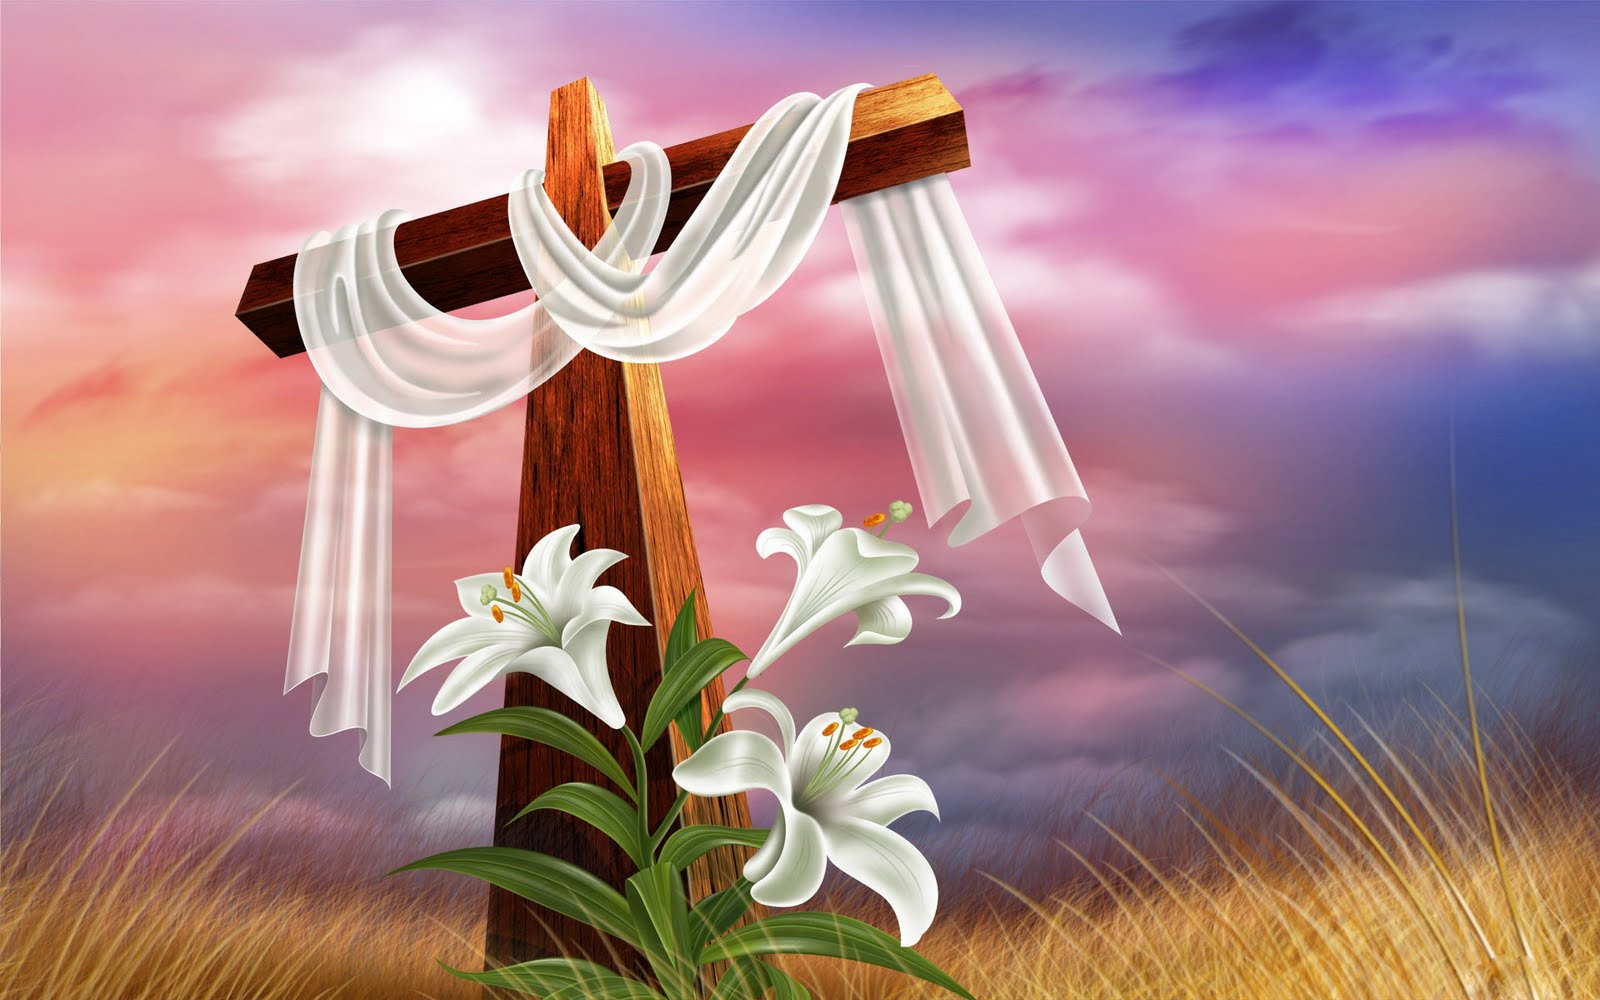 Easter Wallpaper Background 06 1600x1000